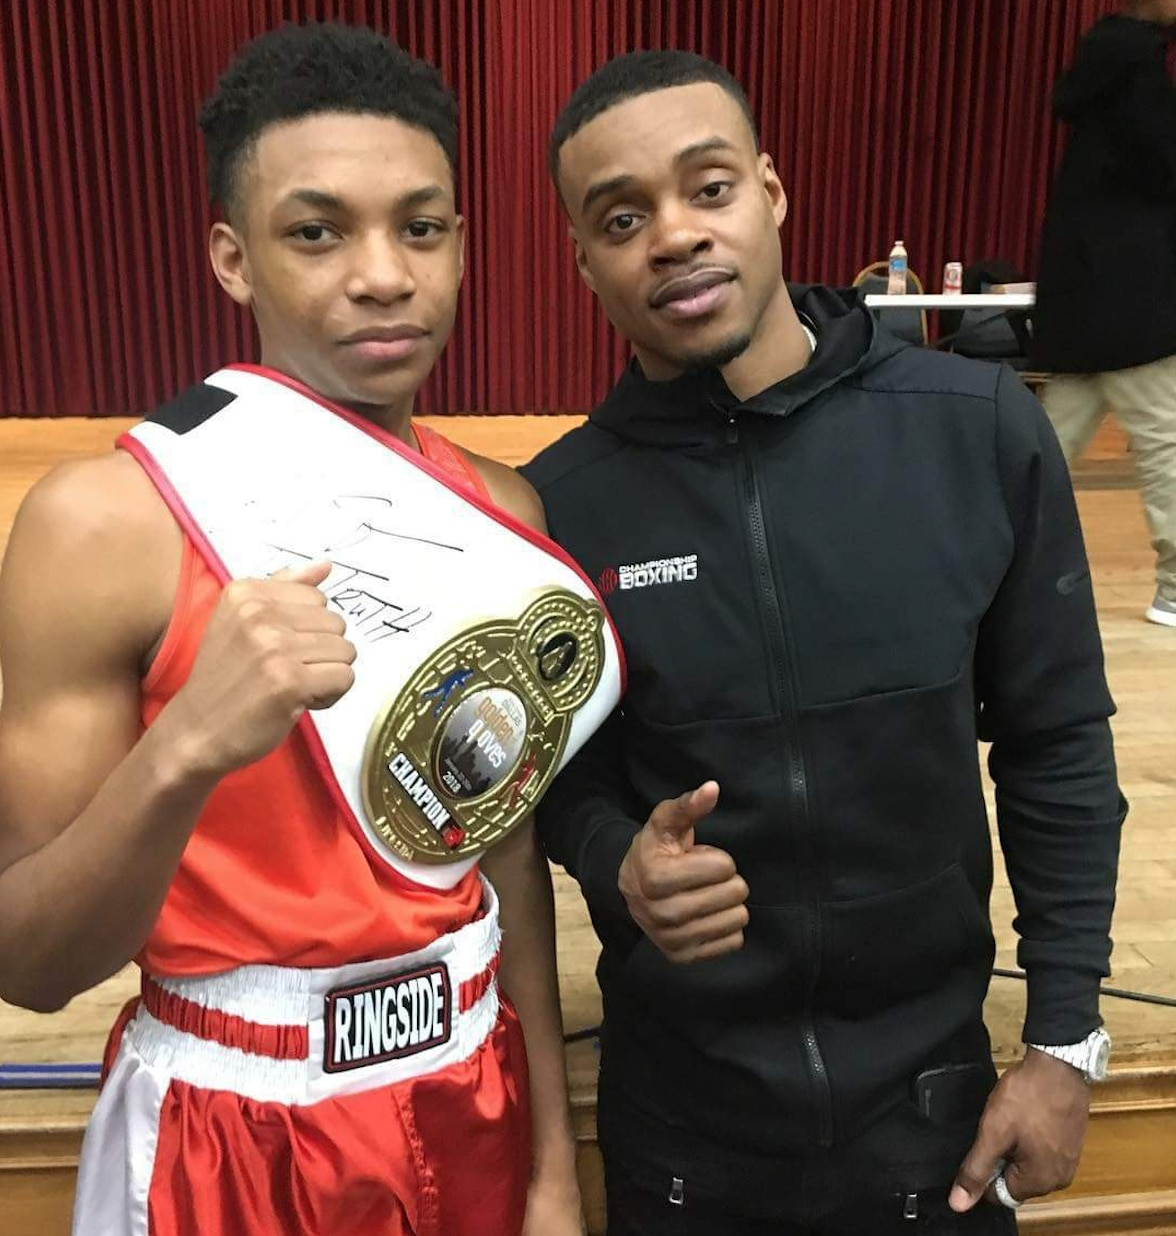 Camran Collier (left) with Errol Spence Jr., a welterweight boxing champion from DeSoto. Collier looked up to Spence and developed a relationship with him over time.